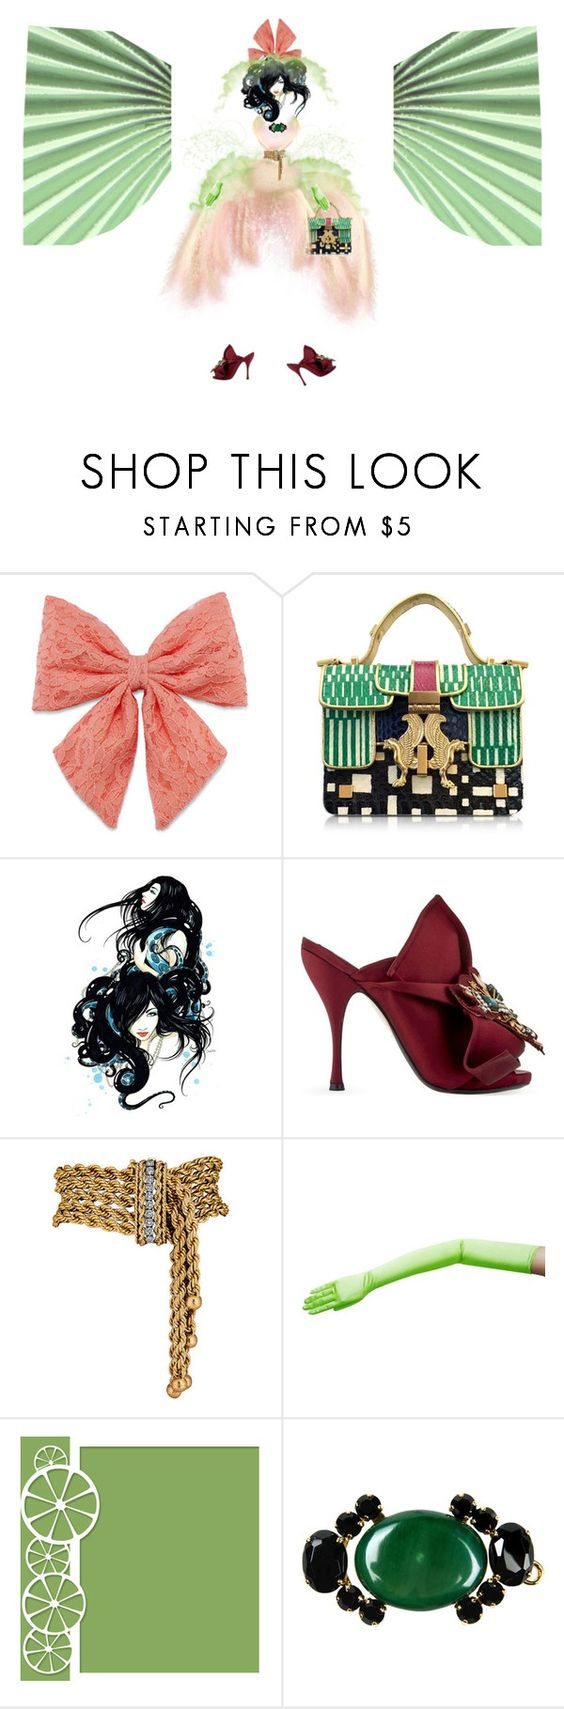 """Miss effect"" by diannecollier ❤ liked on Polyvore featuring Decree, Giancarlo Petriglia, N°21, Marni and vintage"